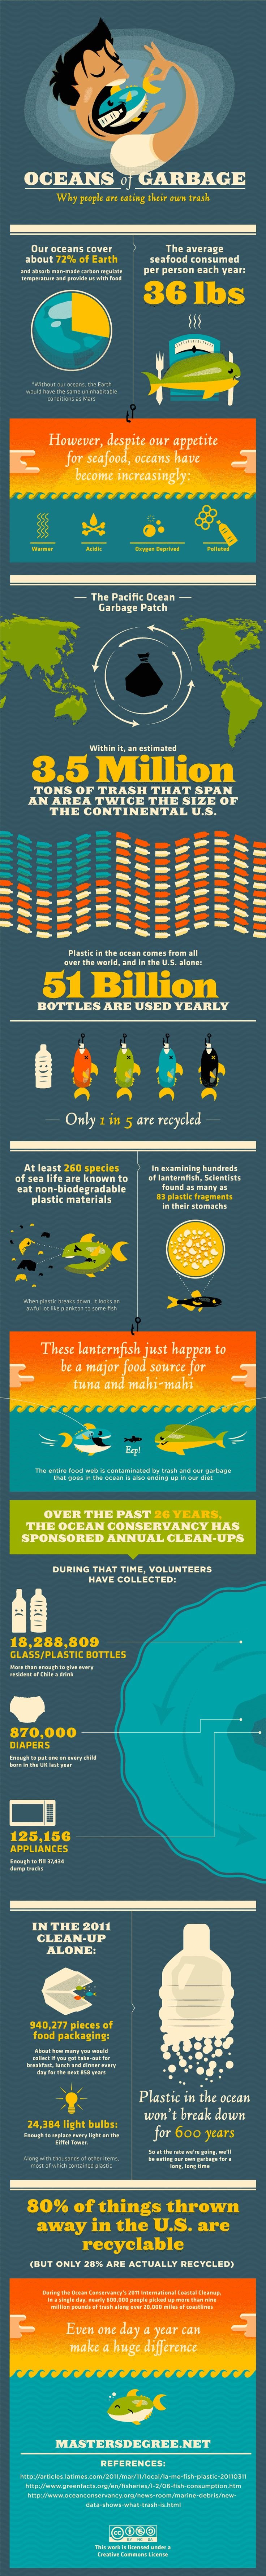 Oceans of Garbage: we can keep our oceans (and food) clean!